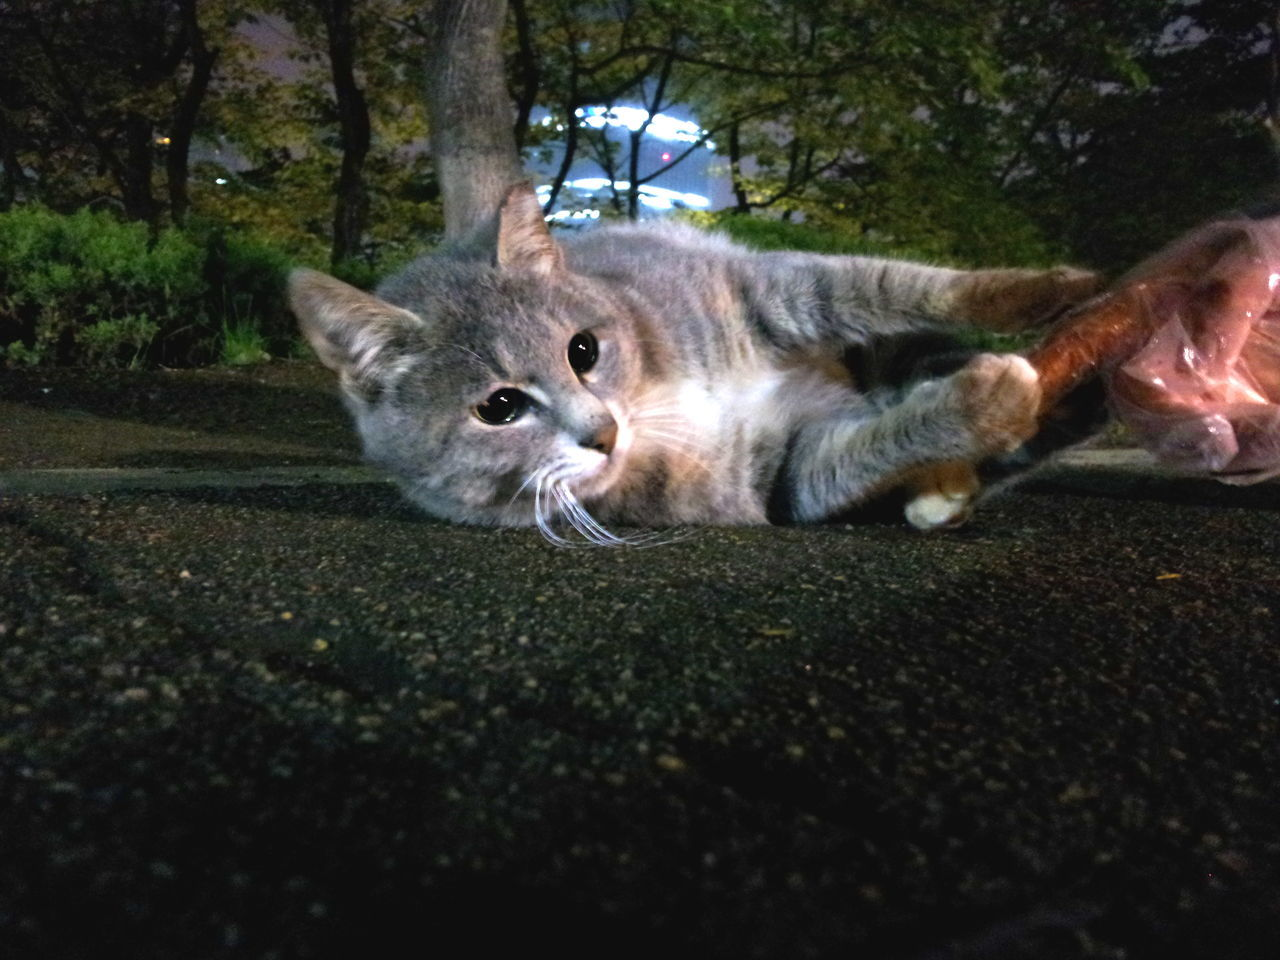 Animal Themes Cat Domestic Animals Feral Cats Nature No People Pets Seokchon Lake Cats The Cat And The People Feral Cats People And Sympathy Cat Love Appearing In The Night Cats